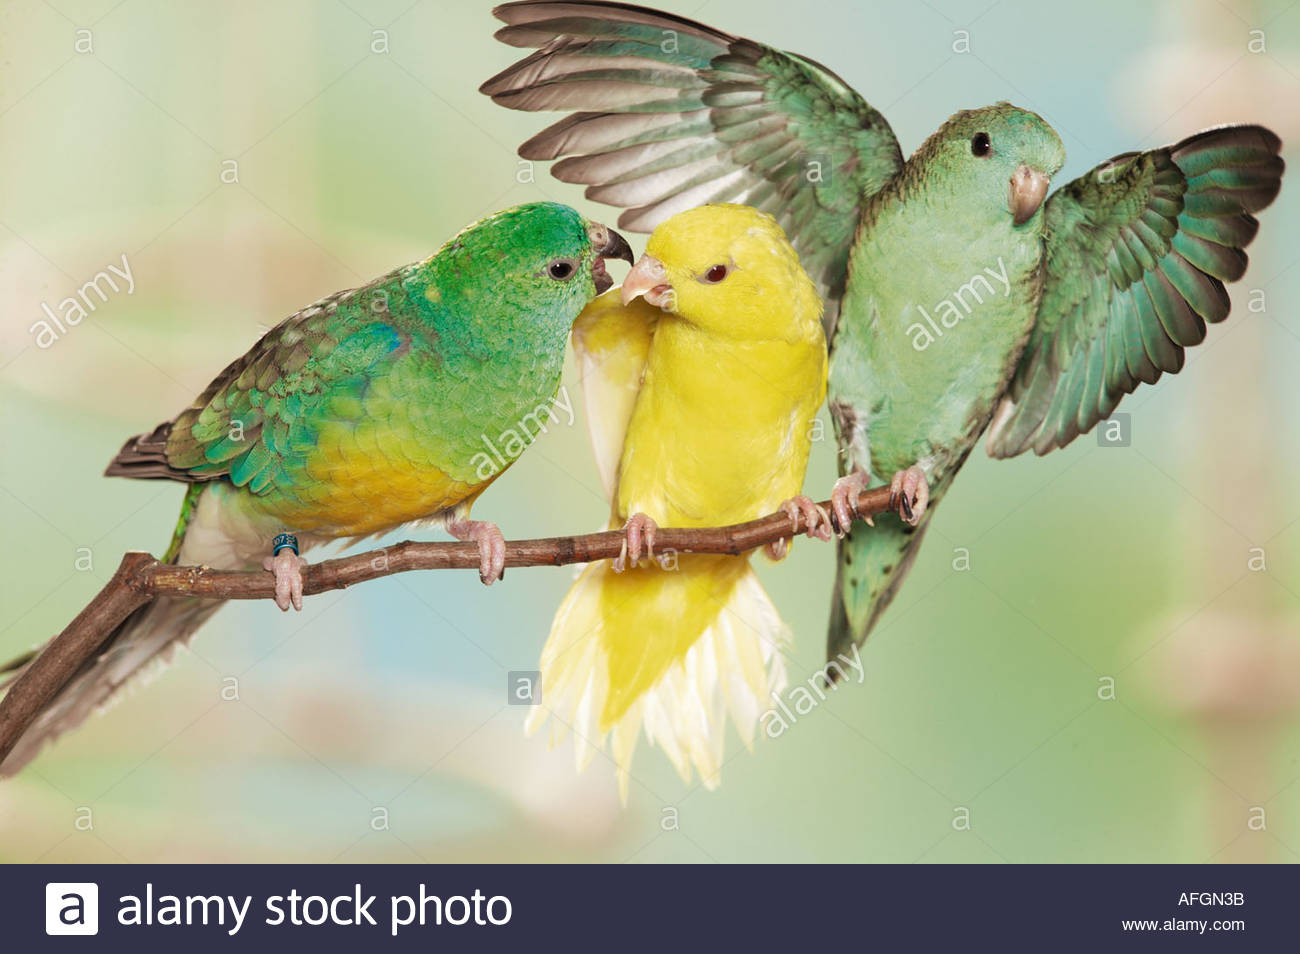 Red-rumped Parrot clipart #18, Download drawings